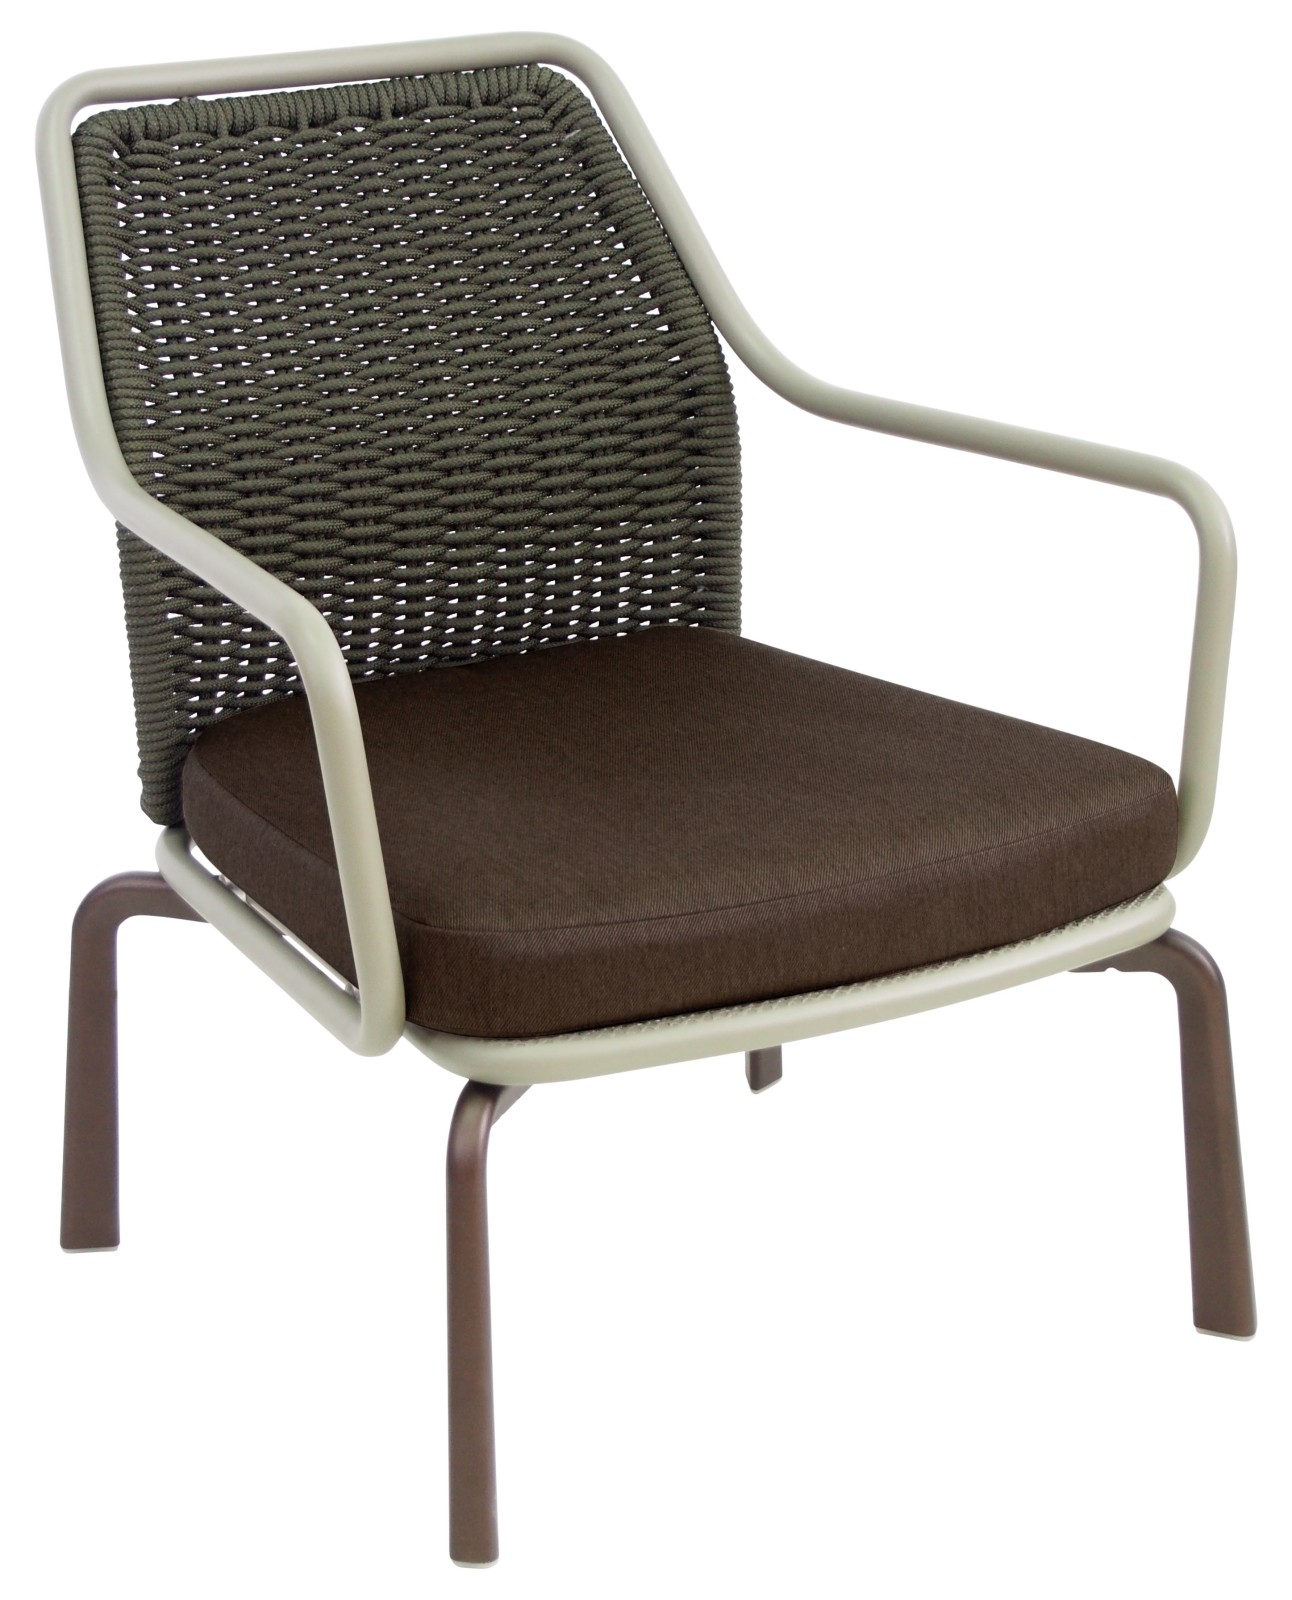 Cross Lounge Chair Indian Brown 41, Brown 42, Indian Brown 41